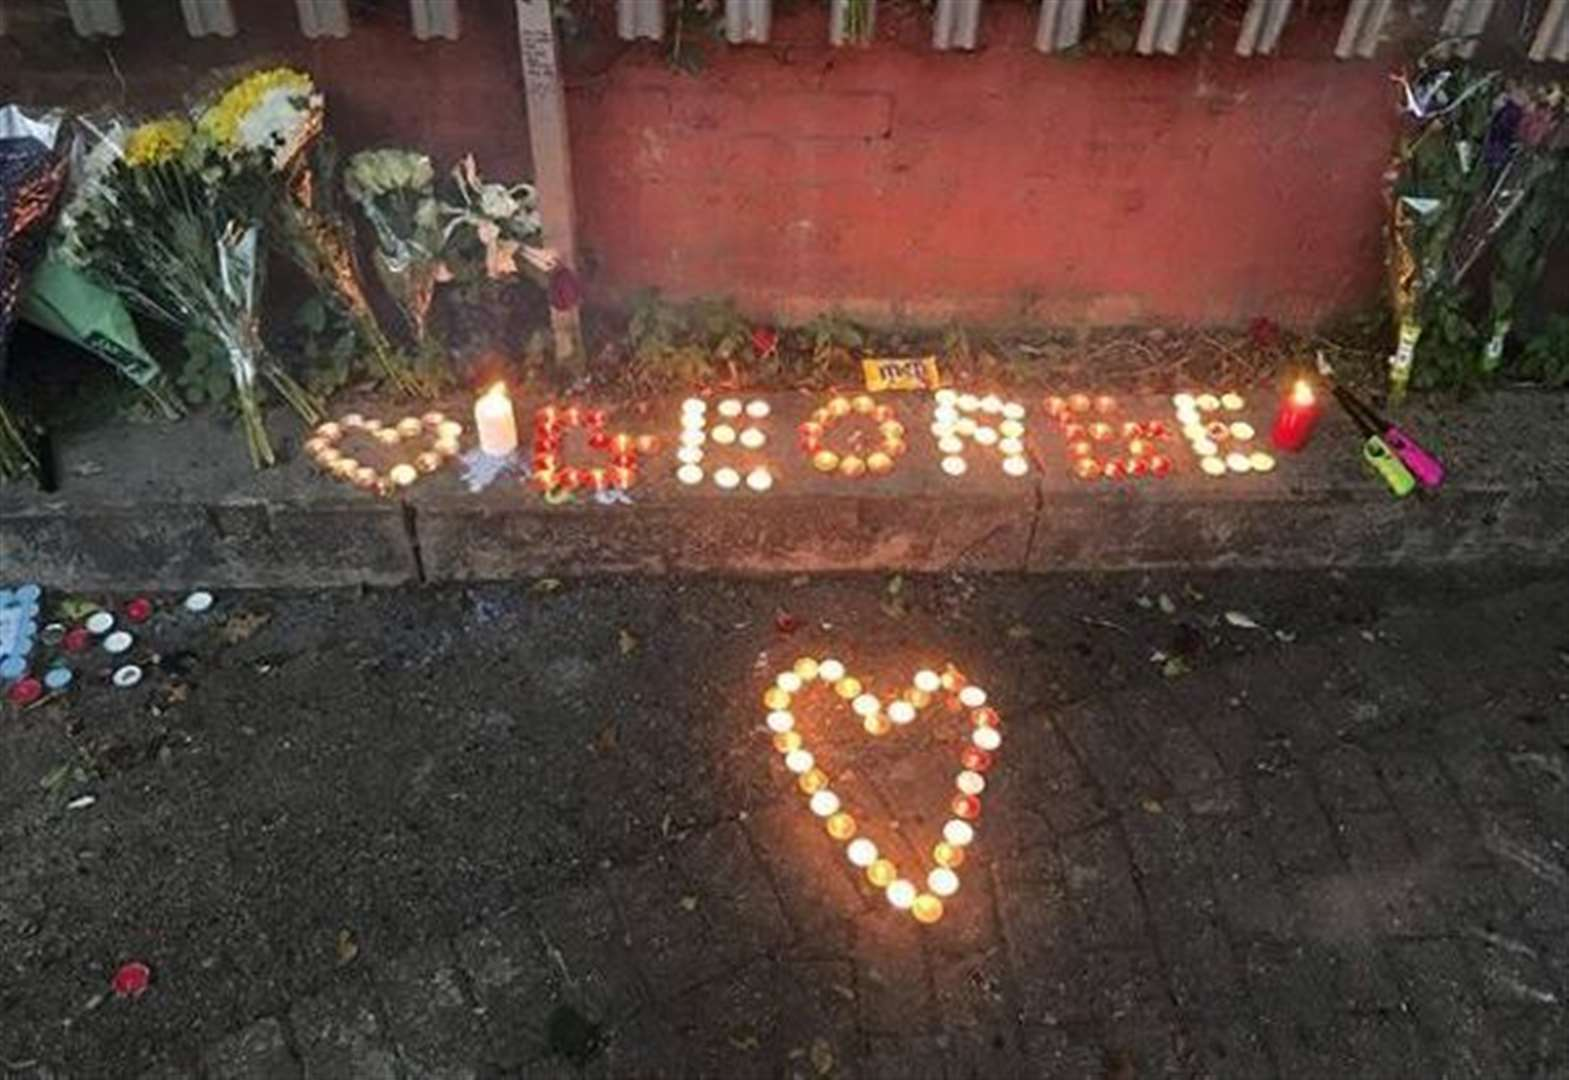 Friends and family leave tributes where teenager died